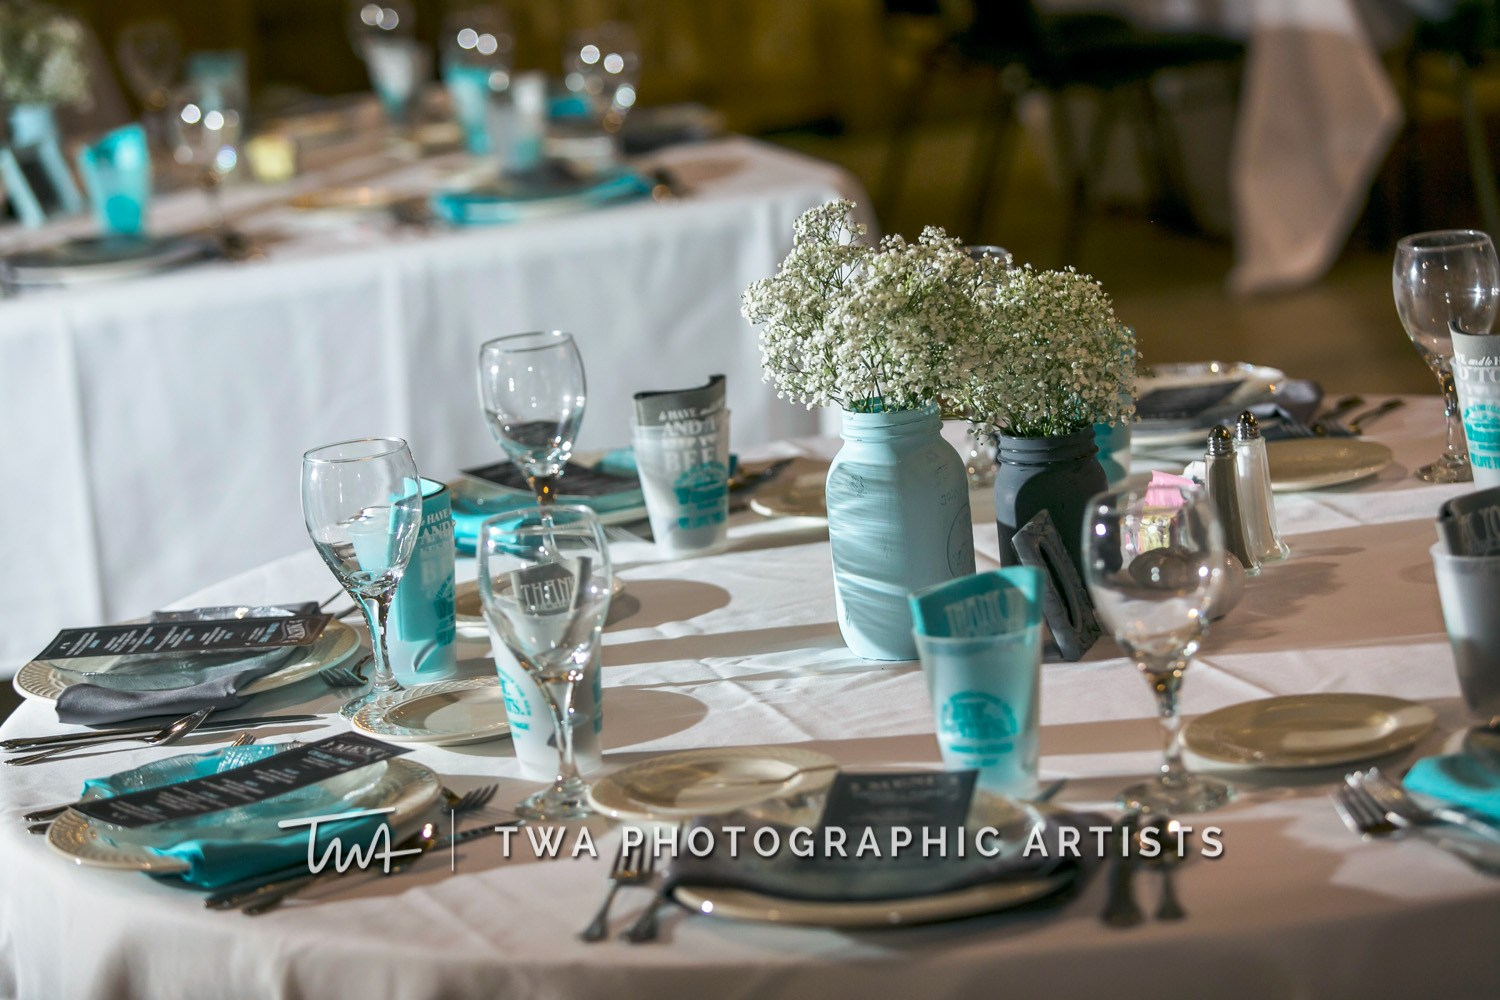 Chicago-Wedding-Photographer-TWA-Photographic-Artists-County-Line-Orchard_Bomba_Purcell_MiC_DR-0899